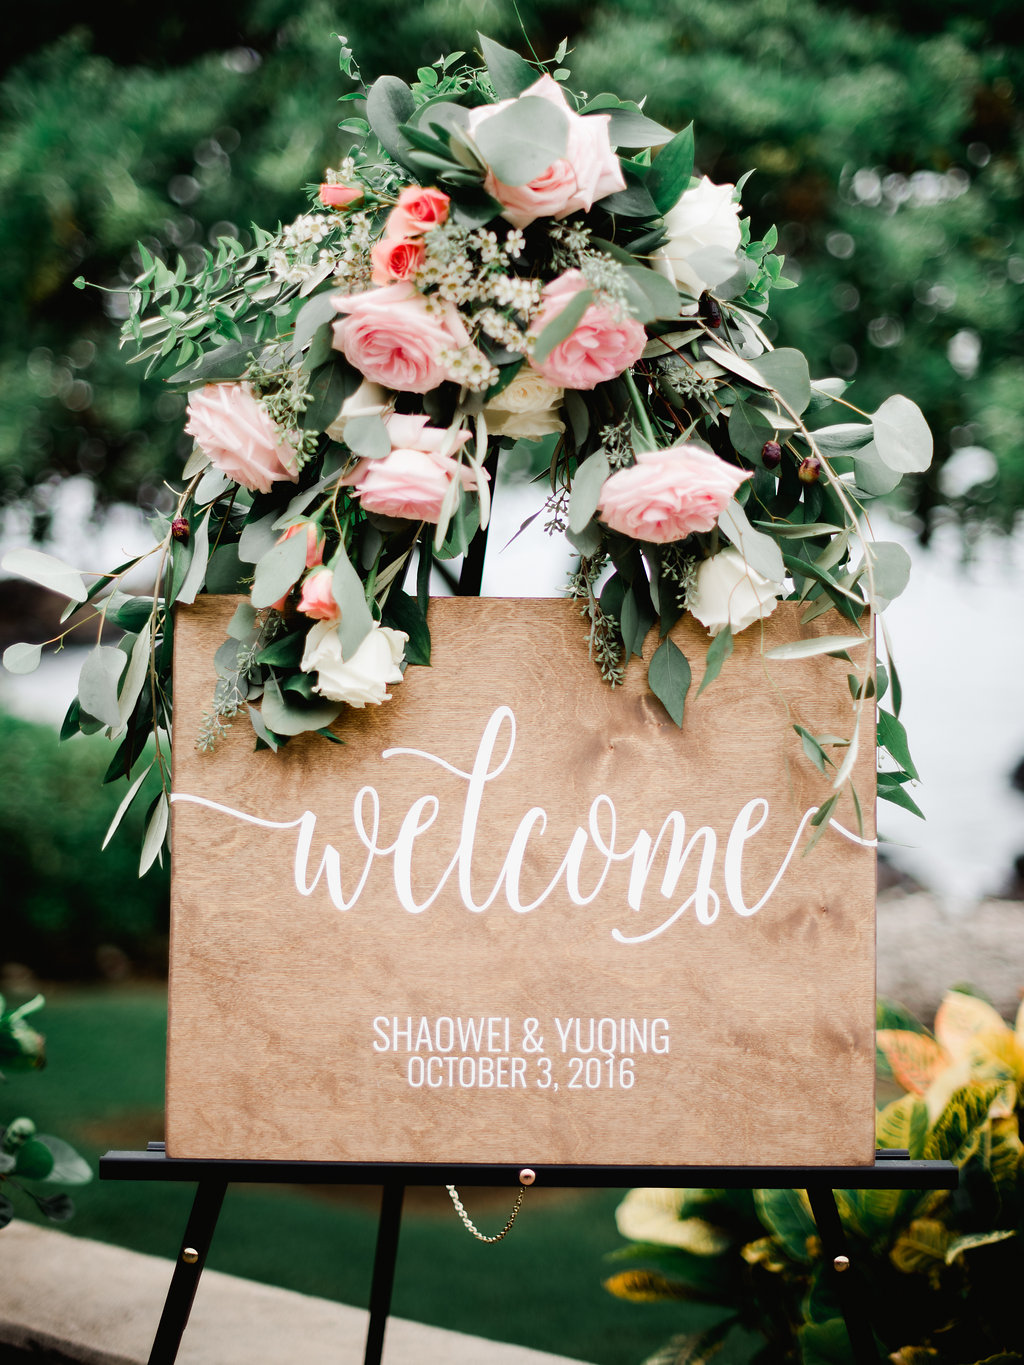 Bliss Wedding Design & Spectacular Events - welcome sign & flowers